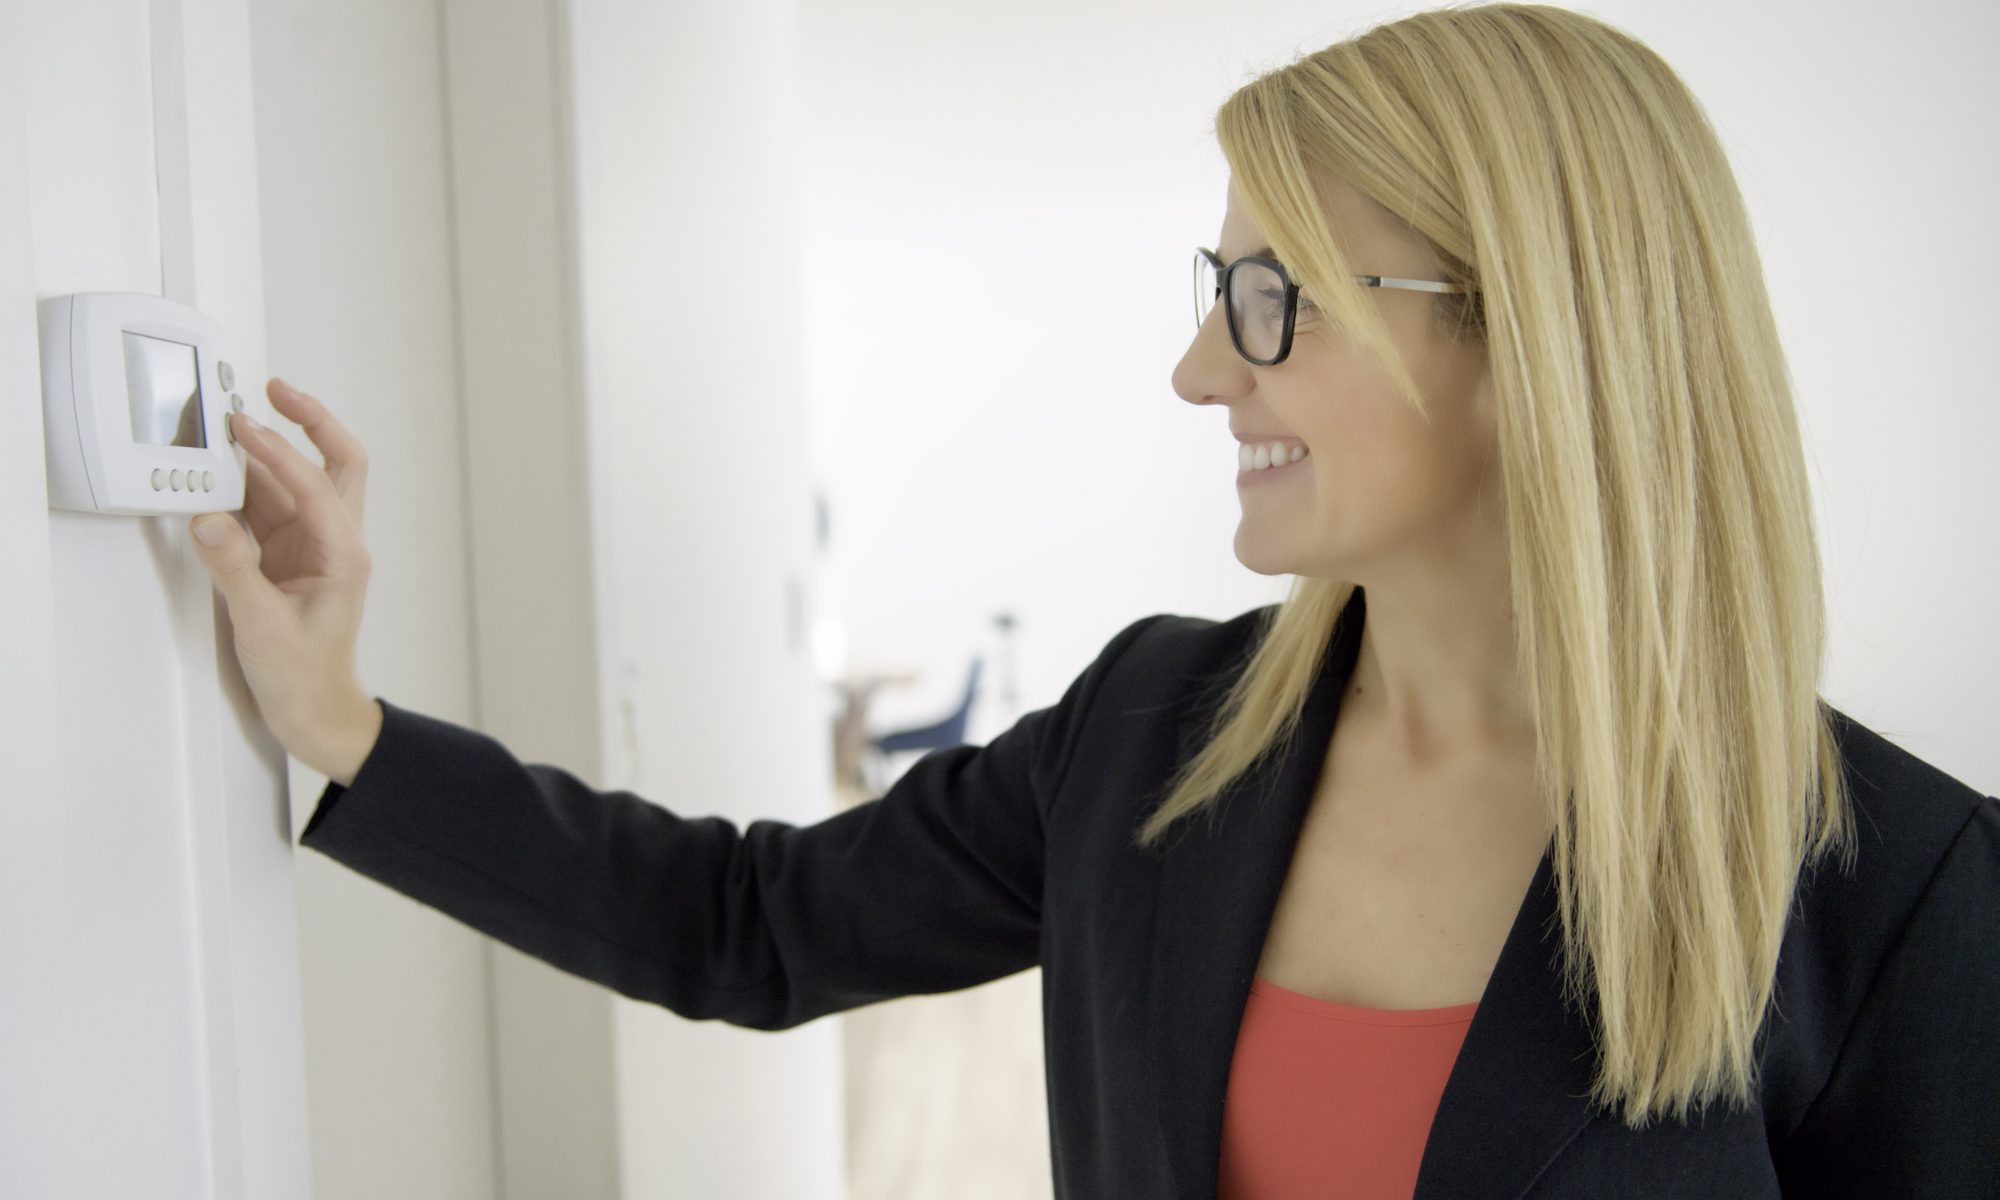 Blonde woman adjusts a thermostat